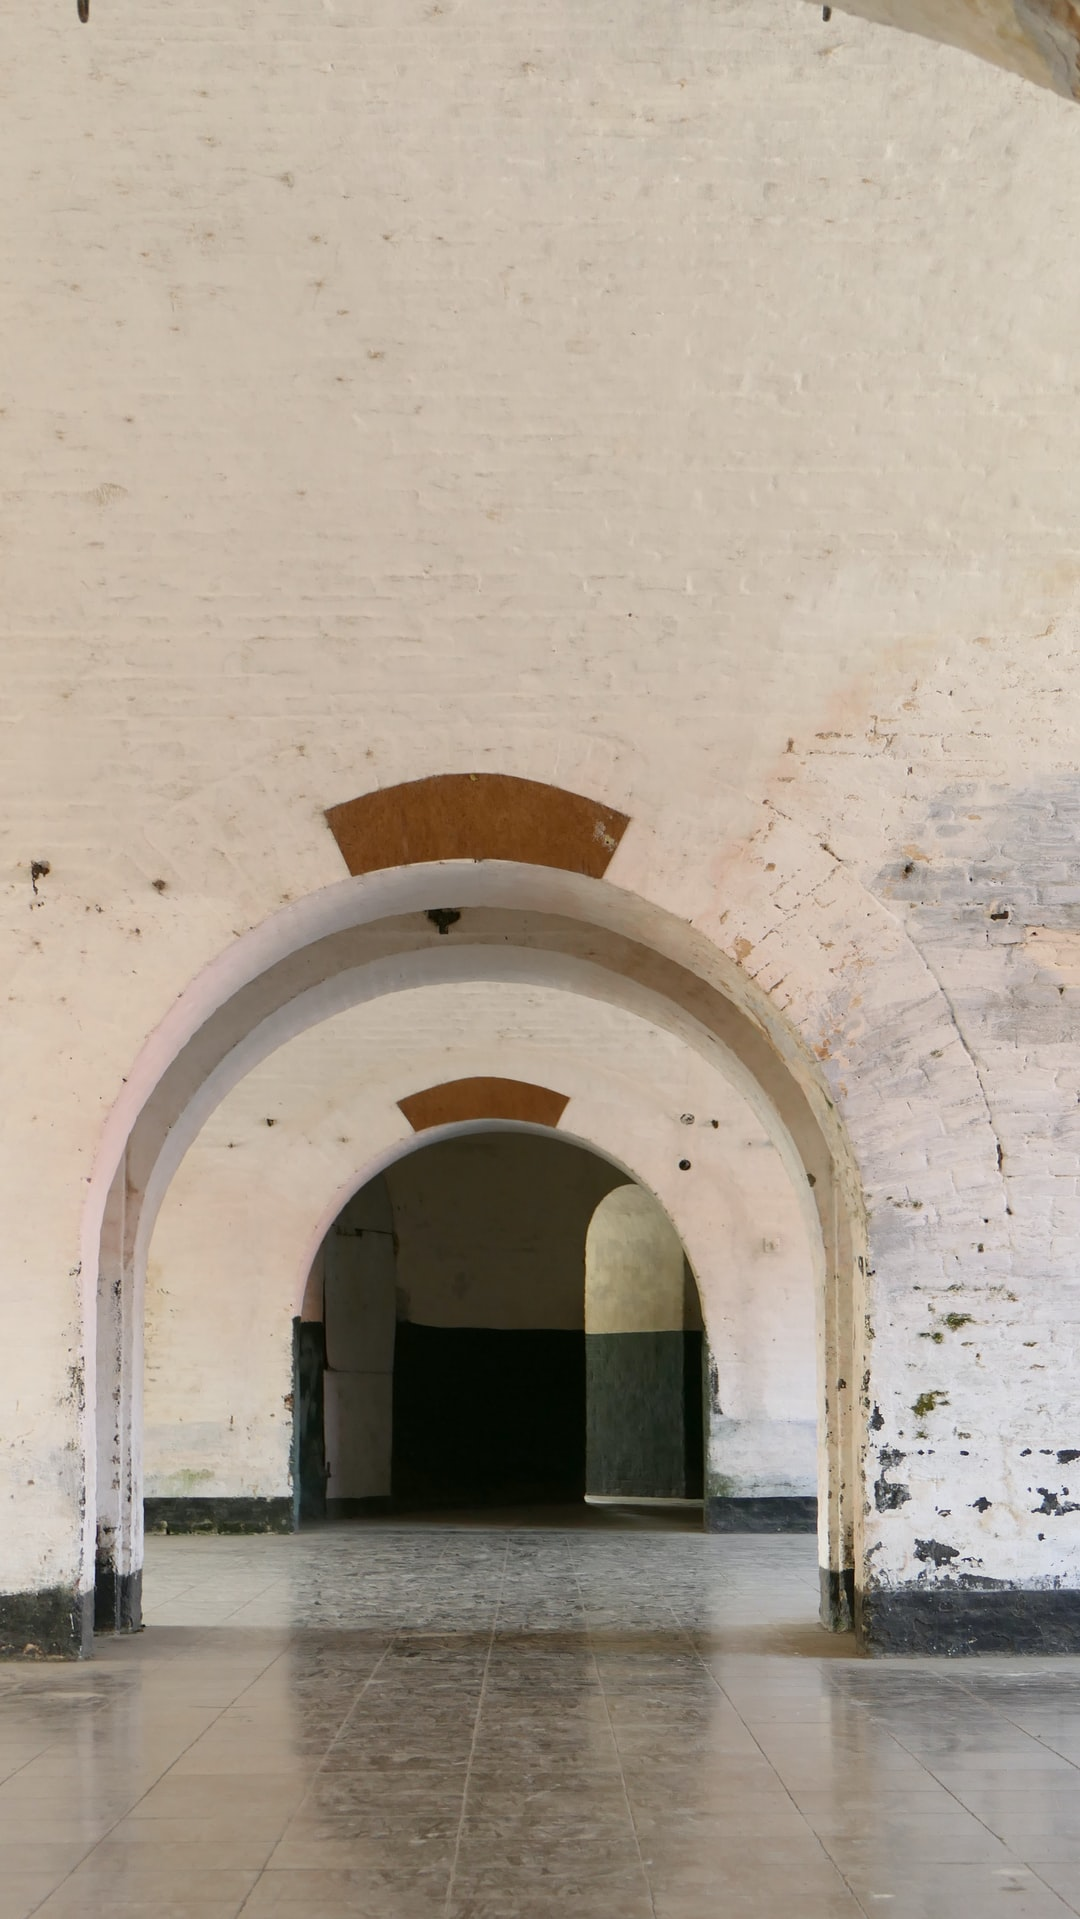 Hallway of the Fort